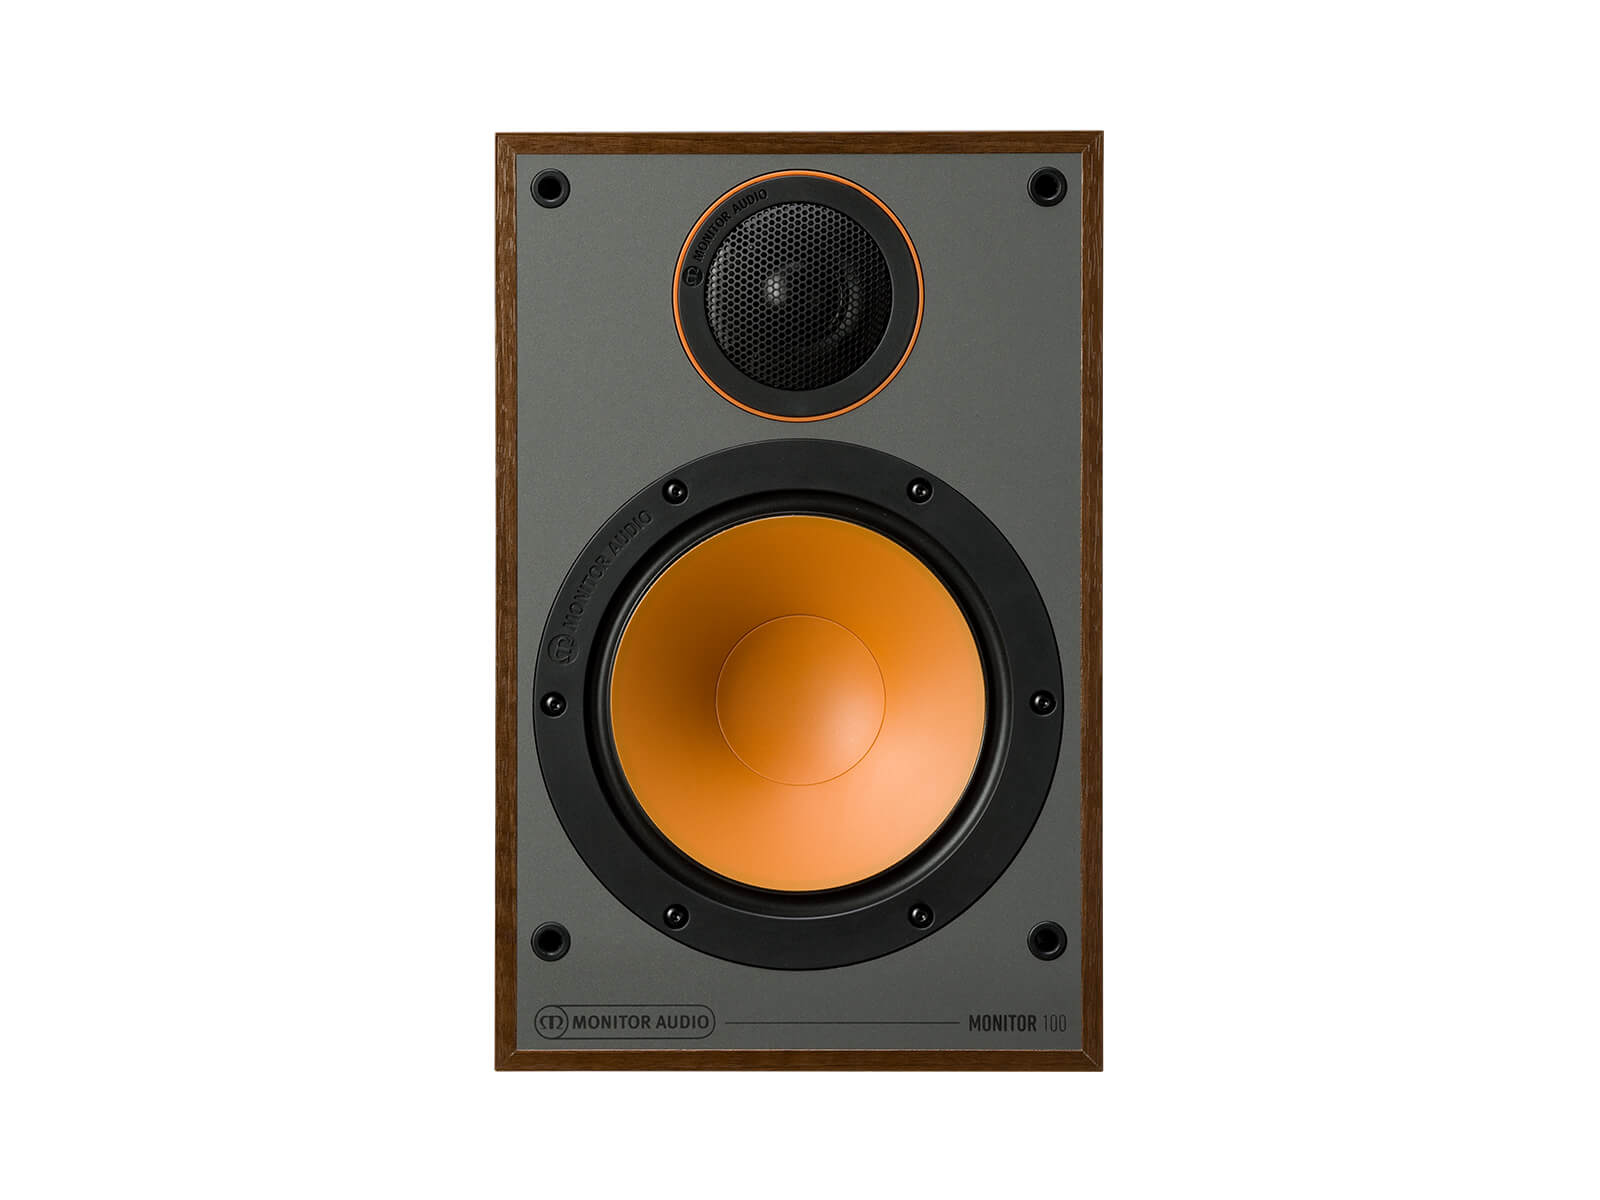 Monitor 100, bookshelf speakers, without grille, front on in a walnut vinyl finish.